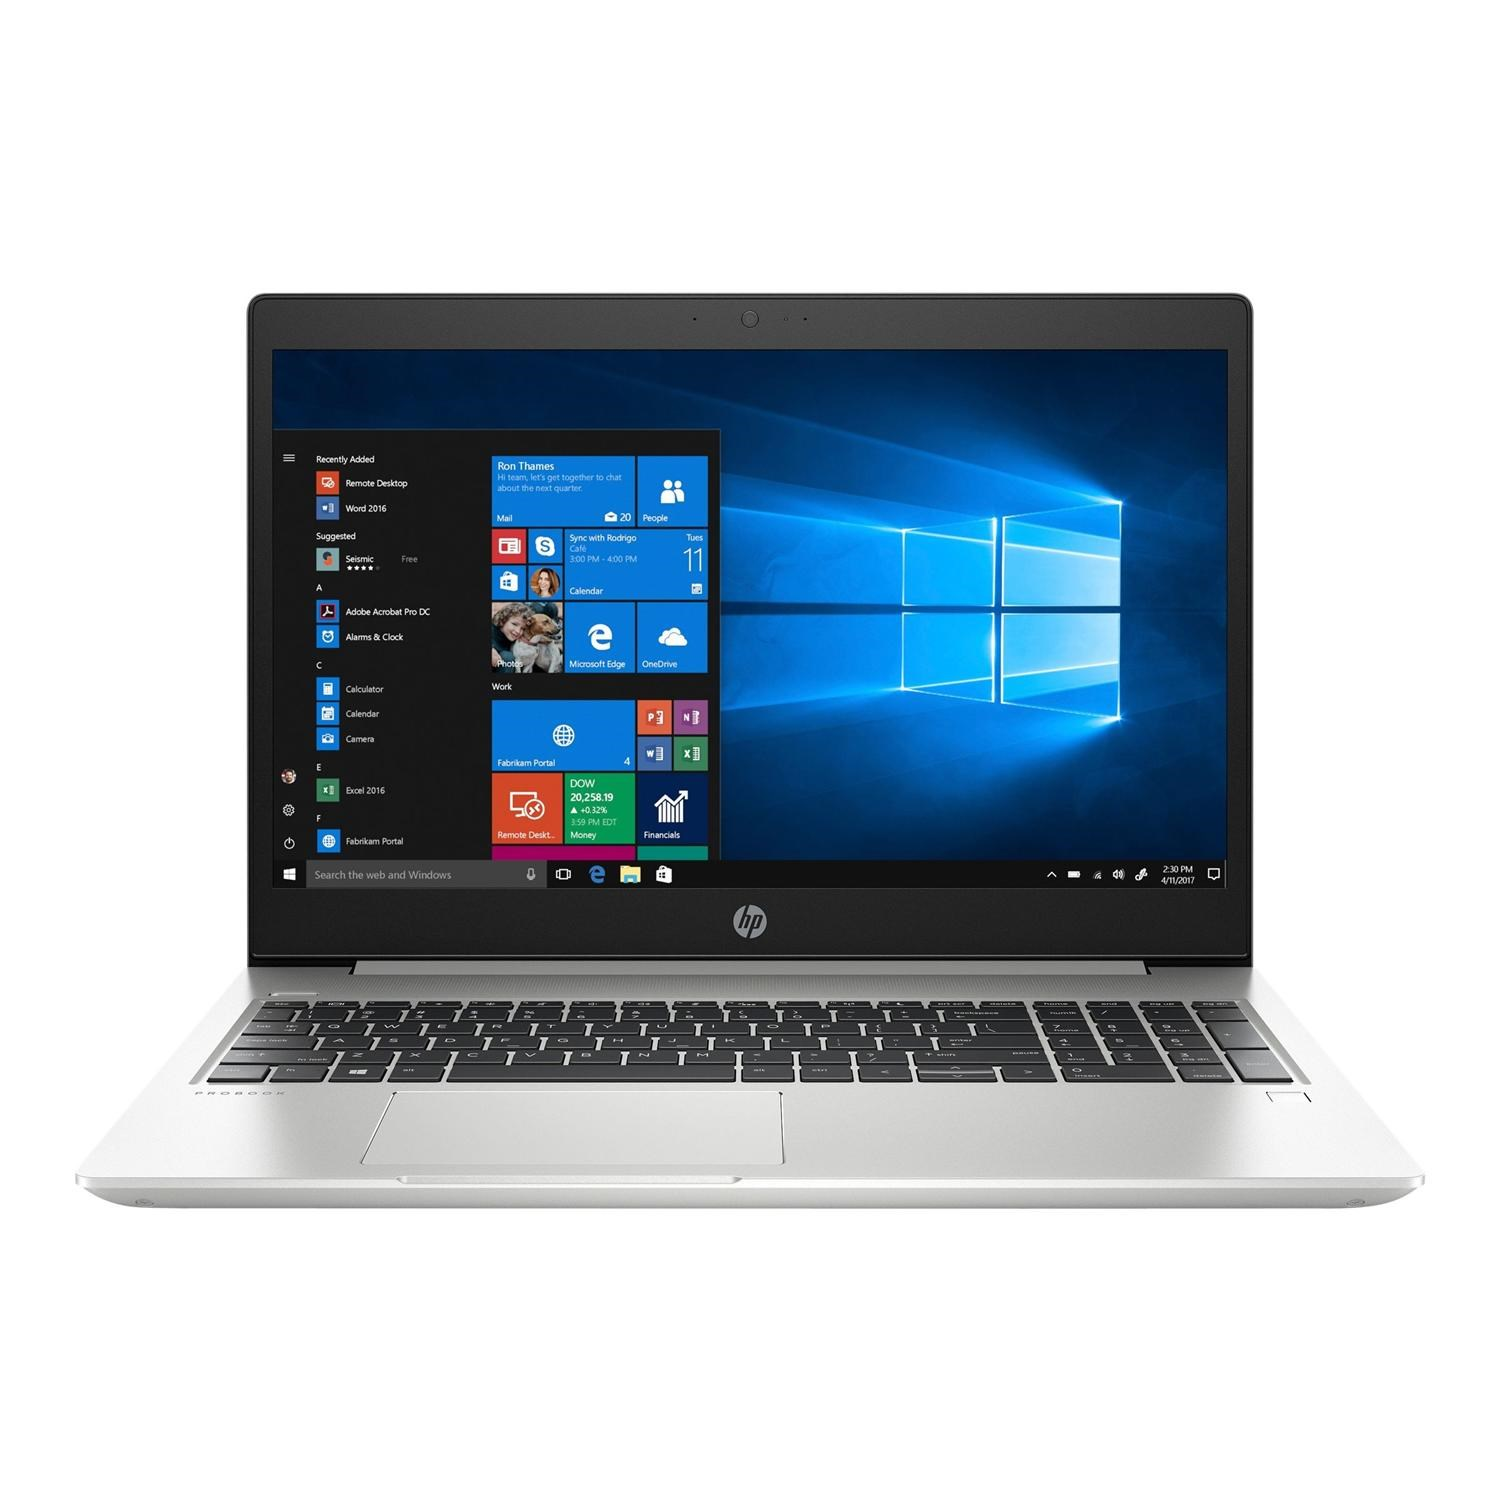 HP ProBook 450 G6 Core i5-8265U 8GB 256GB SSD 15 6 Inch WIndows 10 Pro  Laptop